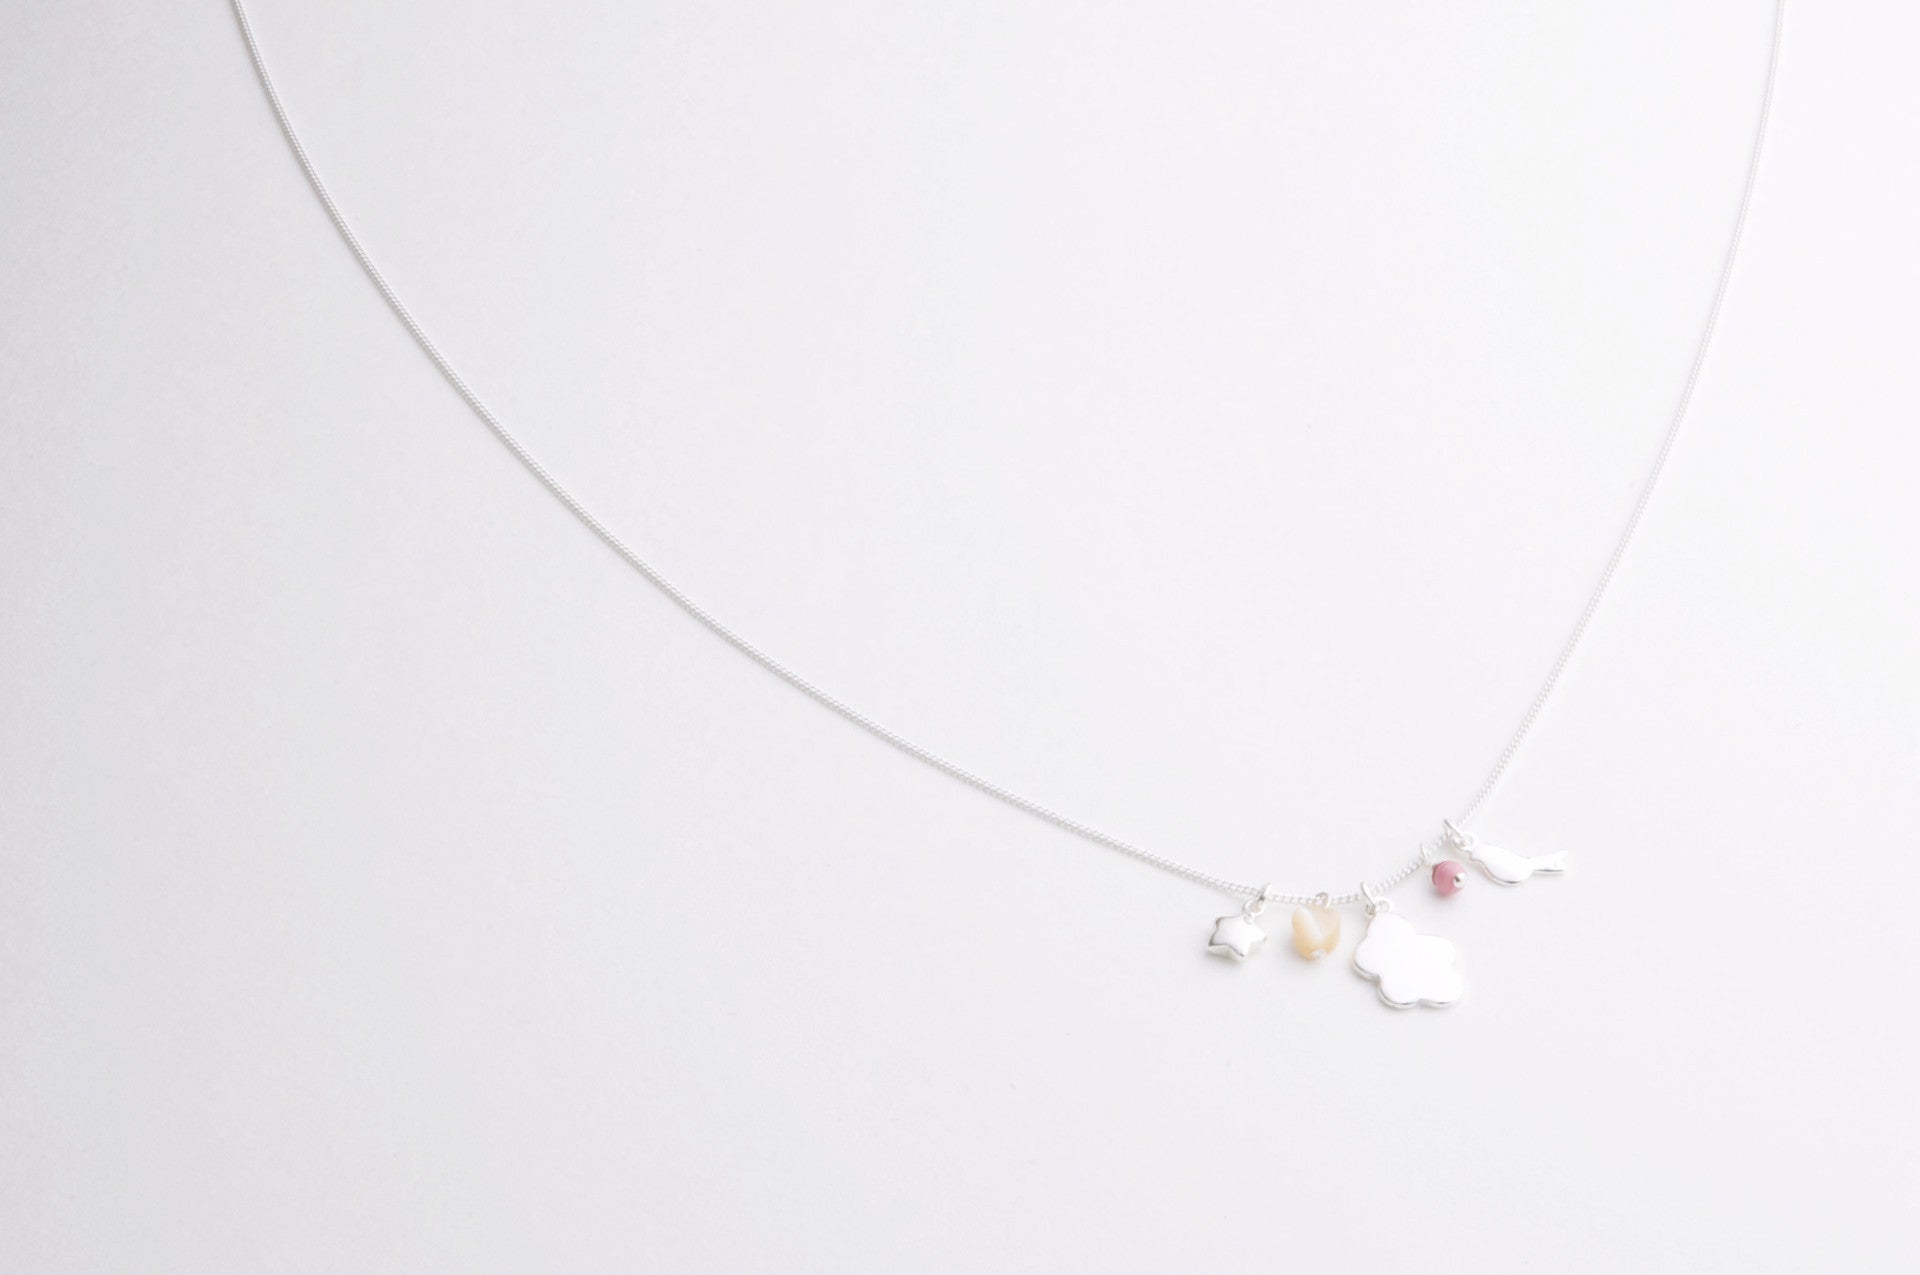 ....Kette SKY versilbert..Necklace SKY silver plated....